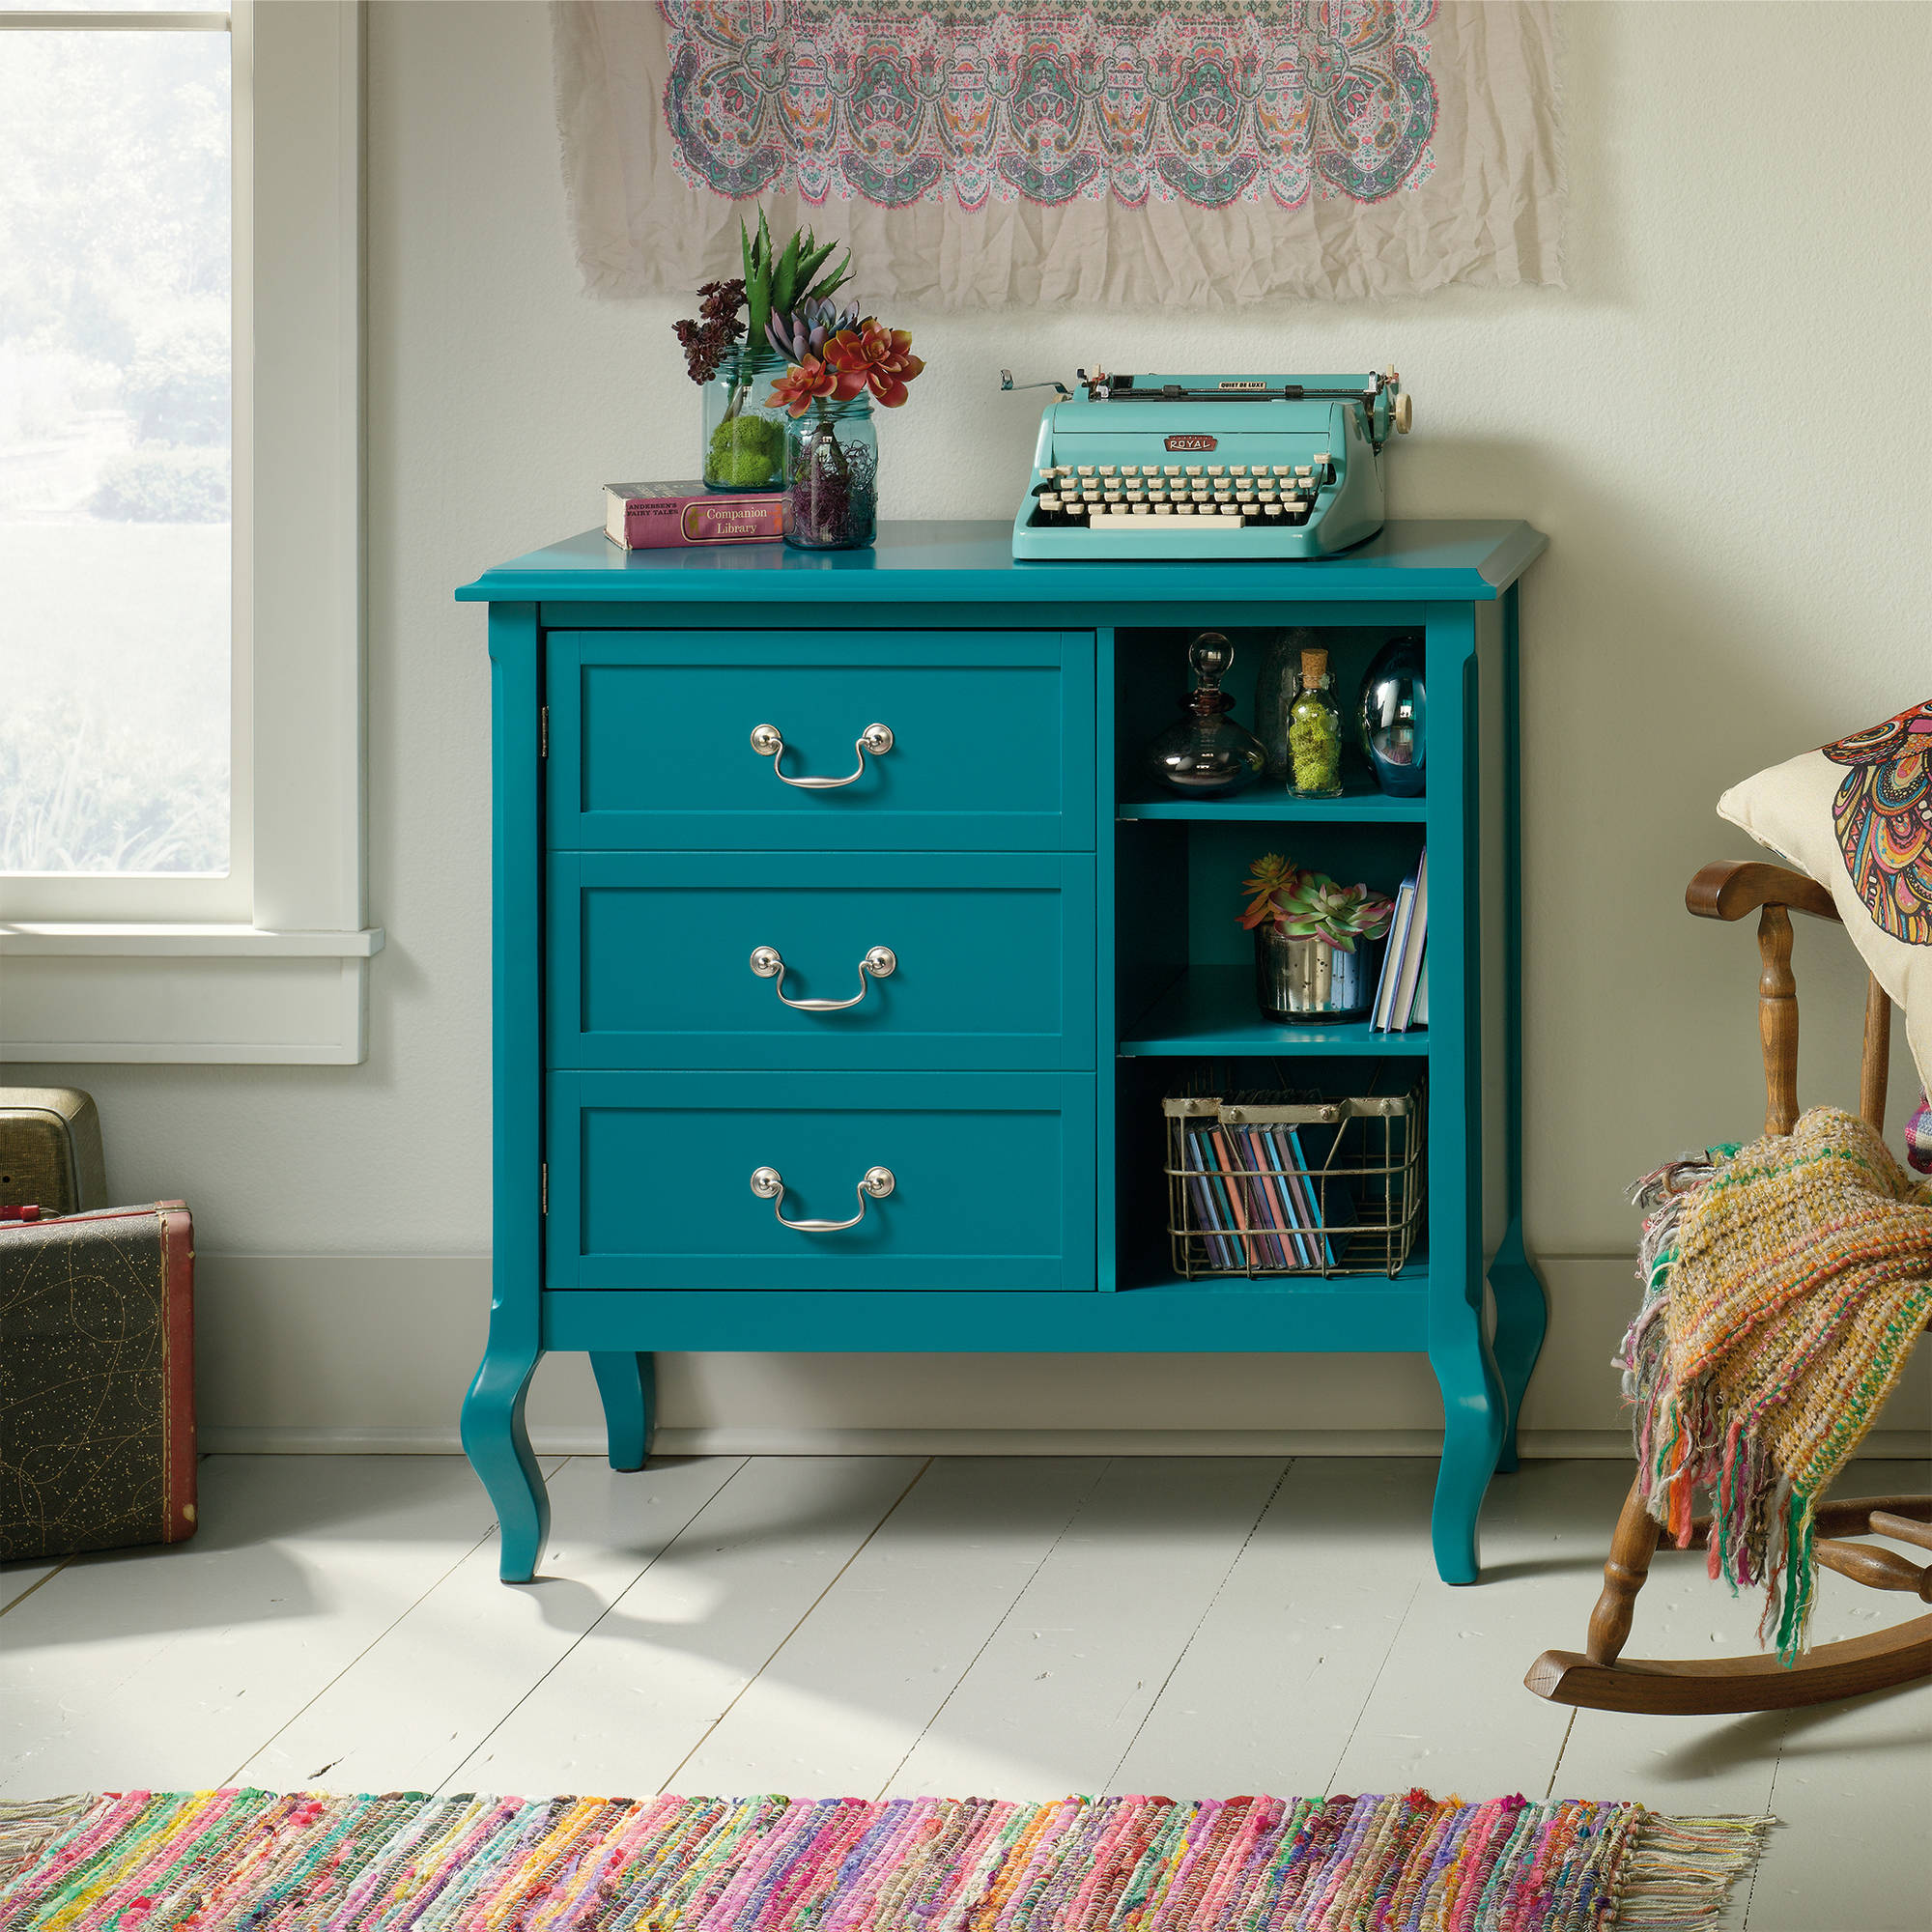 Sauder Eden Rue Accent Storage Cabinet, Peacock Finish